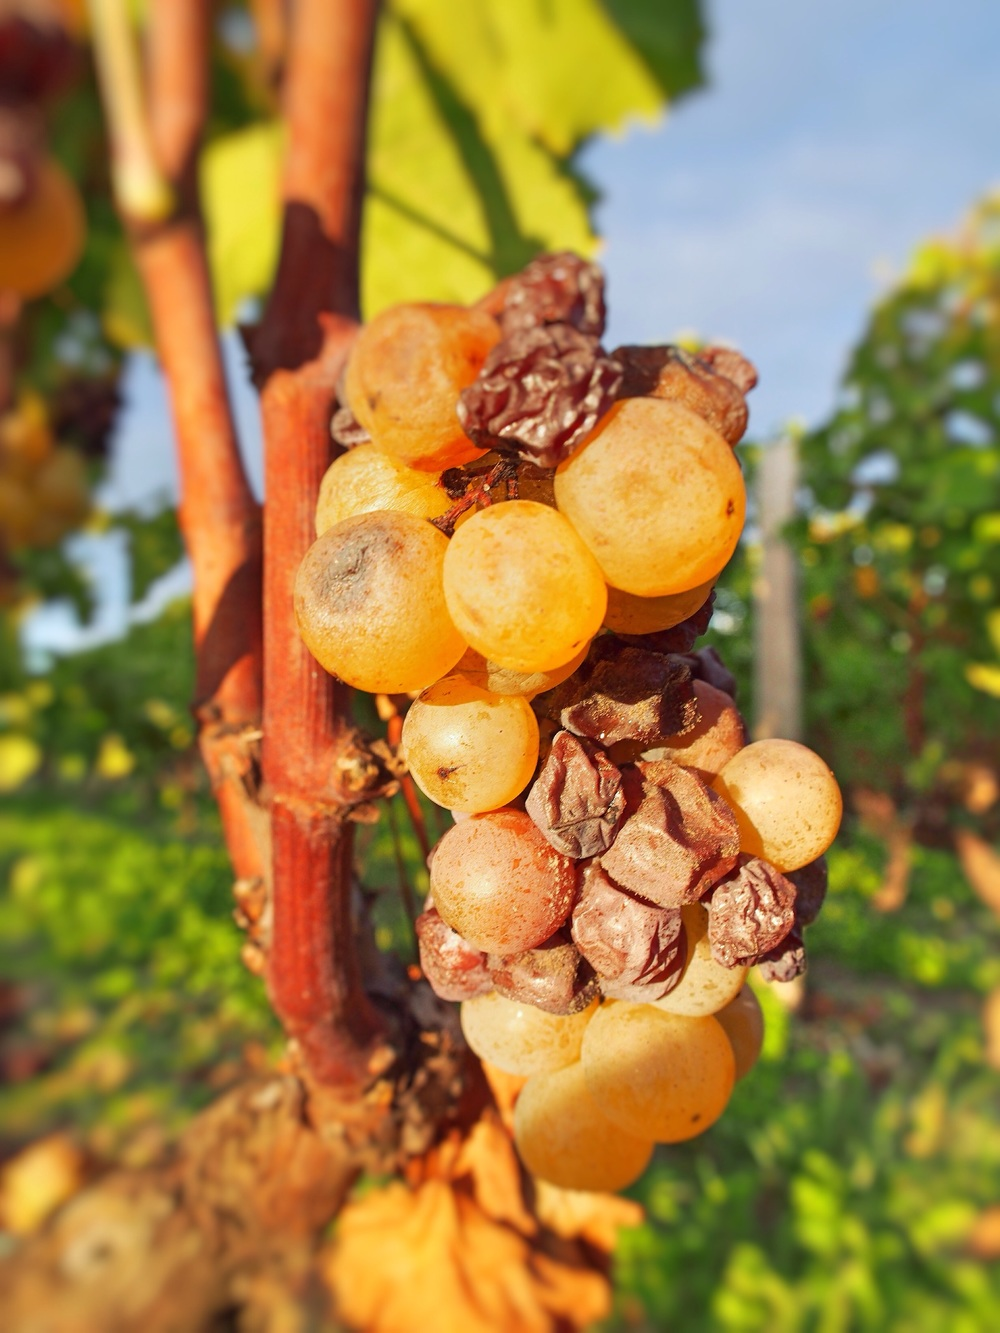 We were picking the mouldy grapes known as noble rot to make the speciality sweet wine the region is famous for.